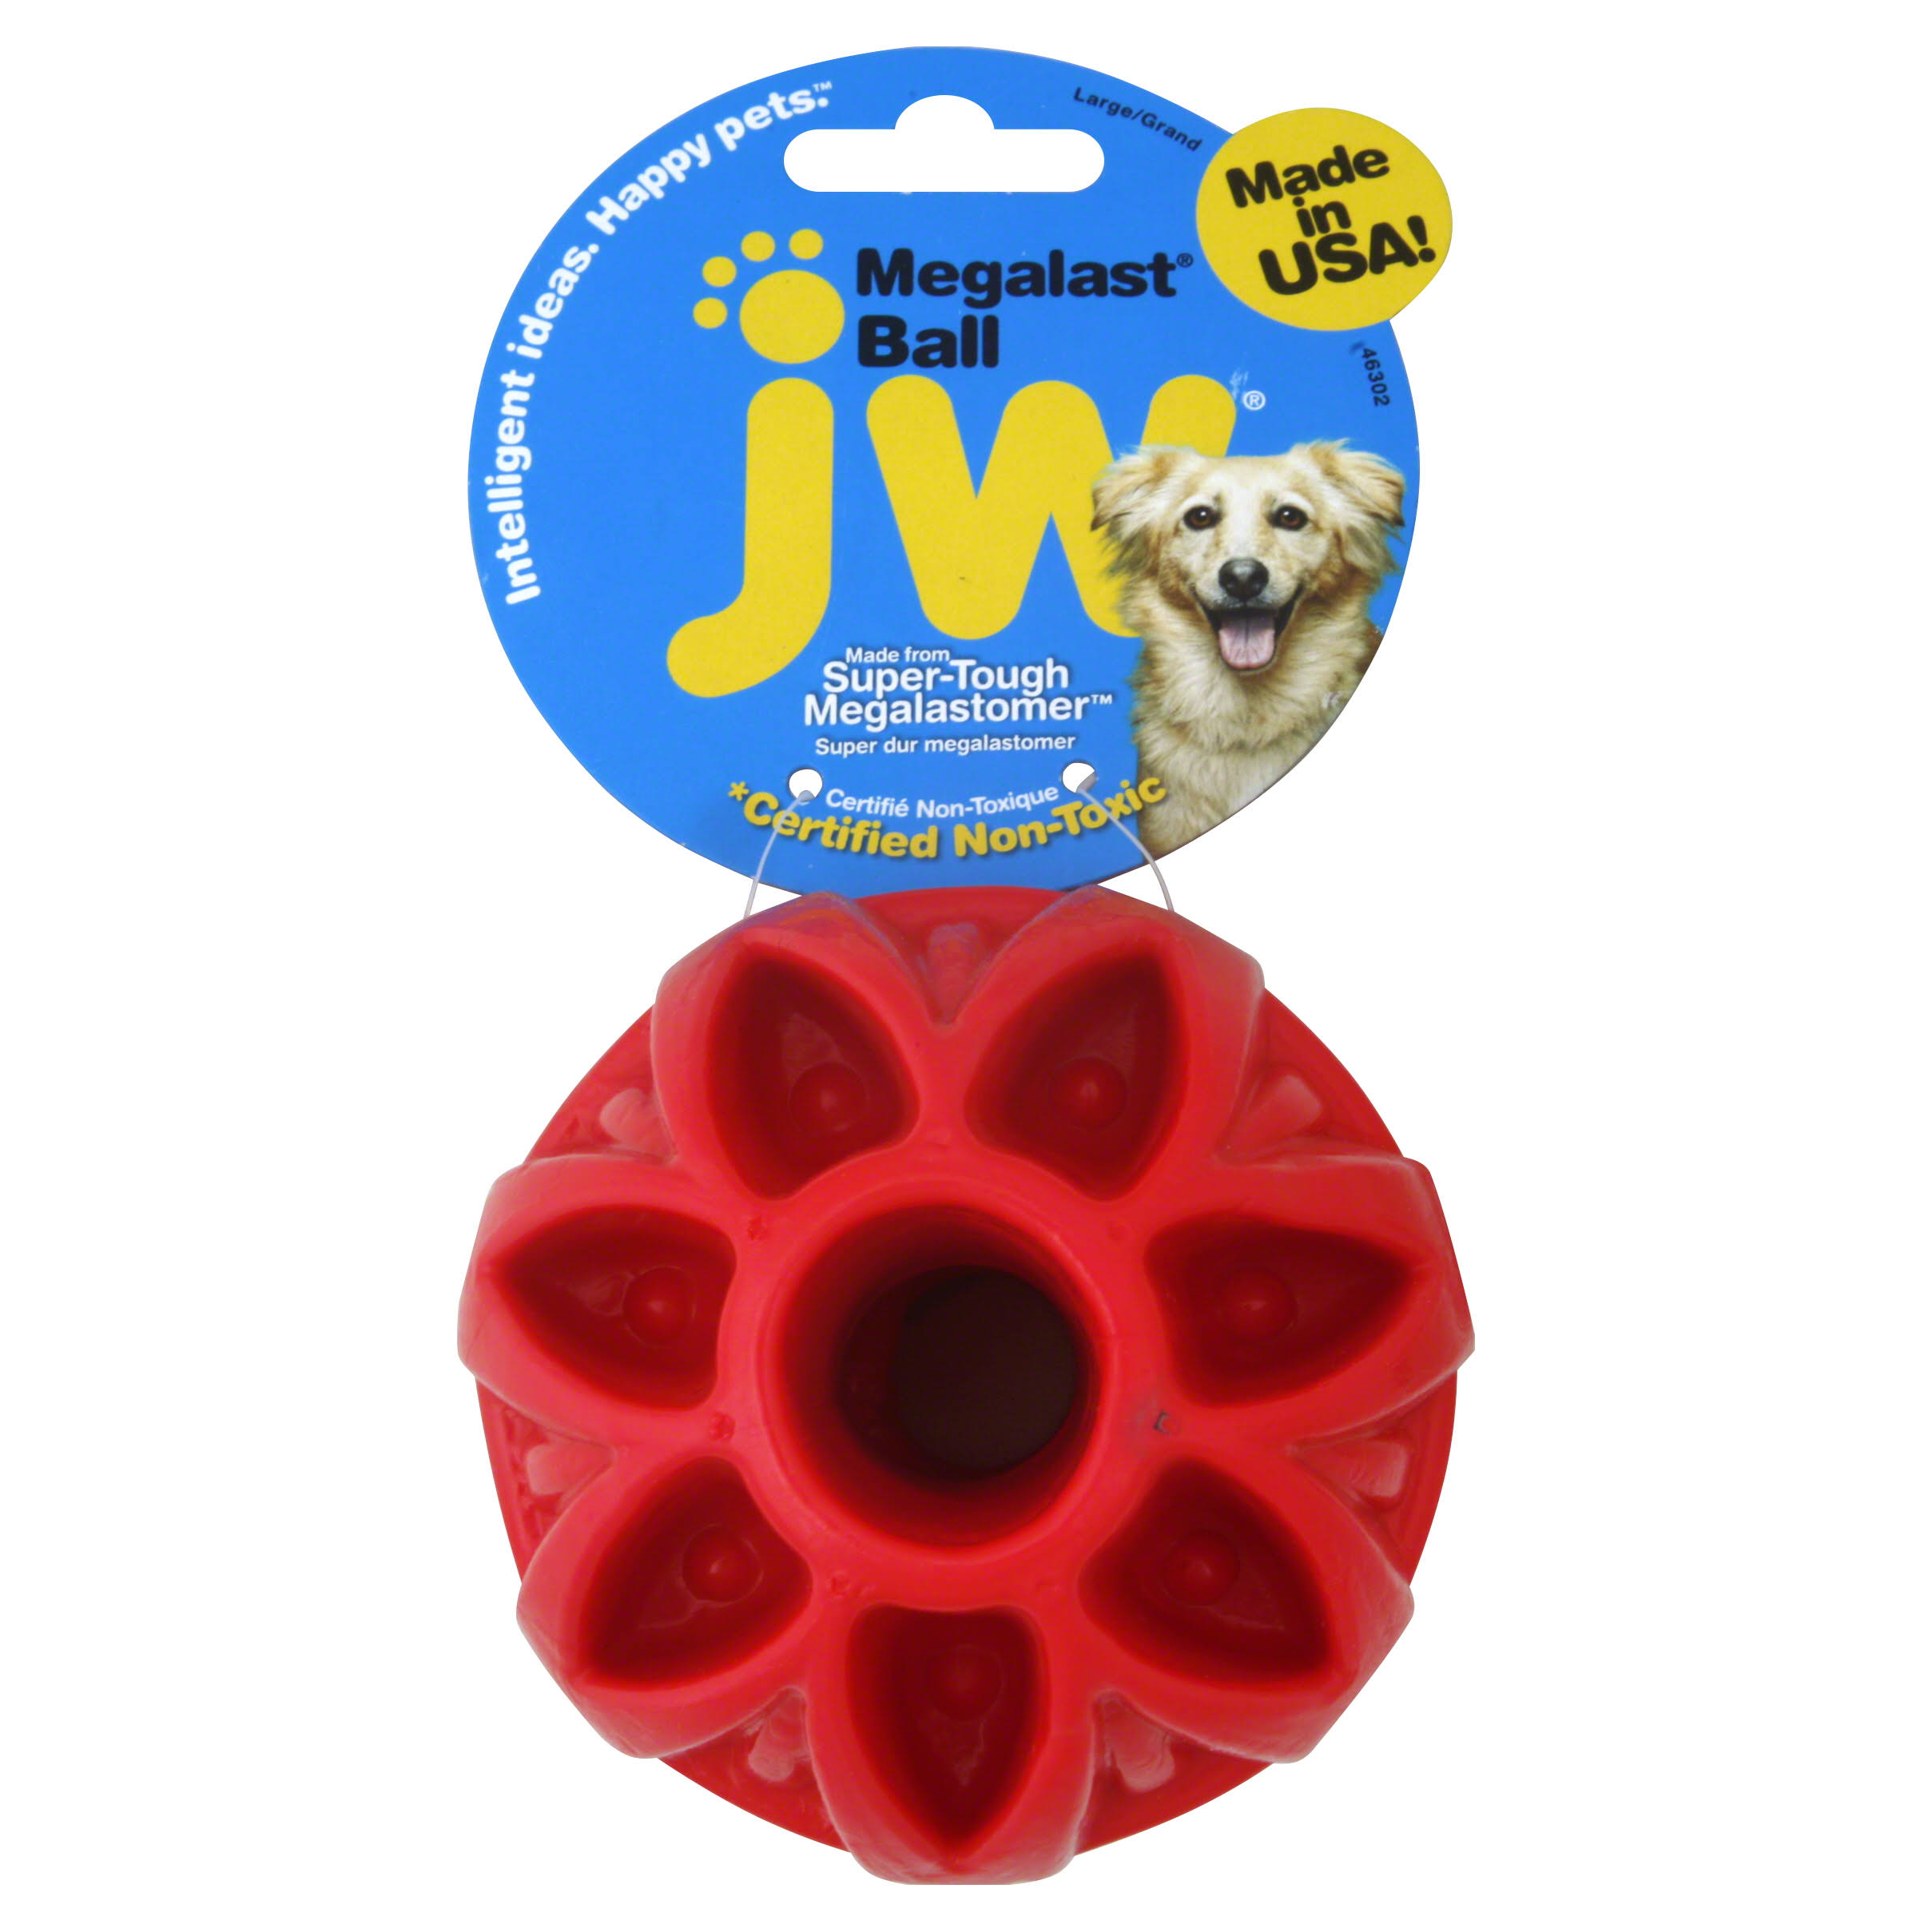 Jw Pet Company Megalast Ball - Large